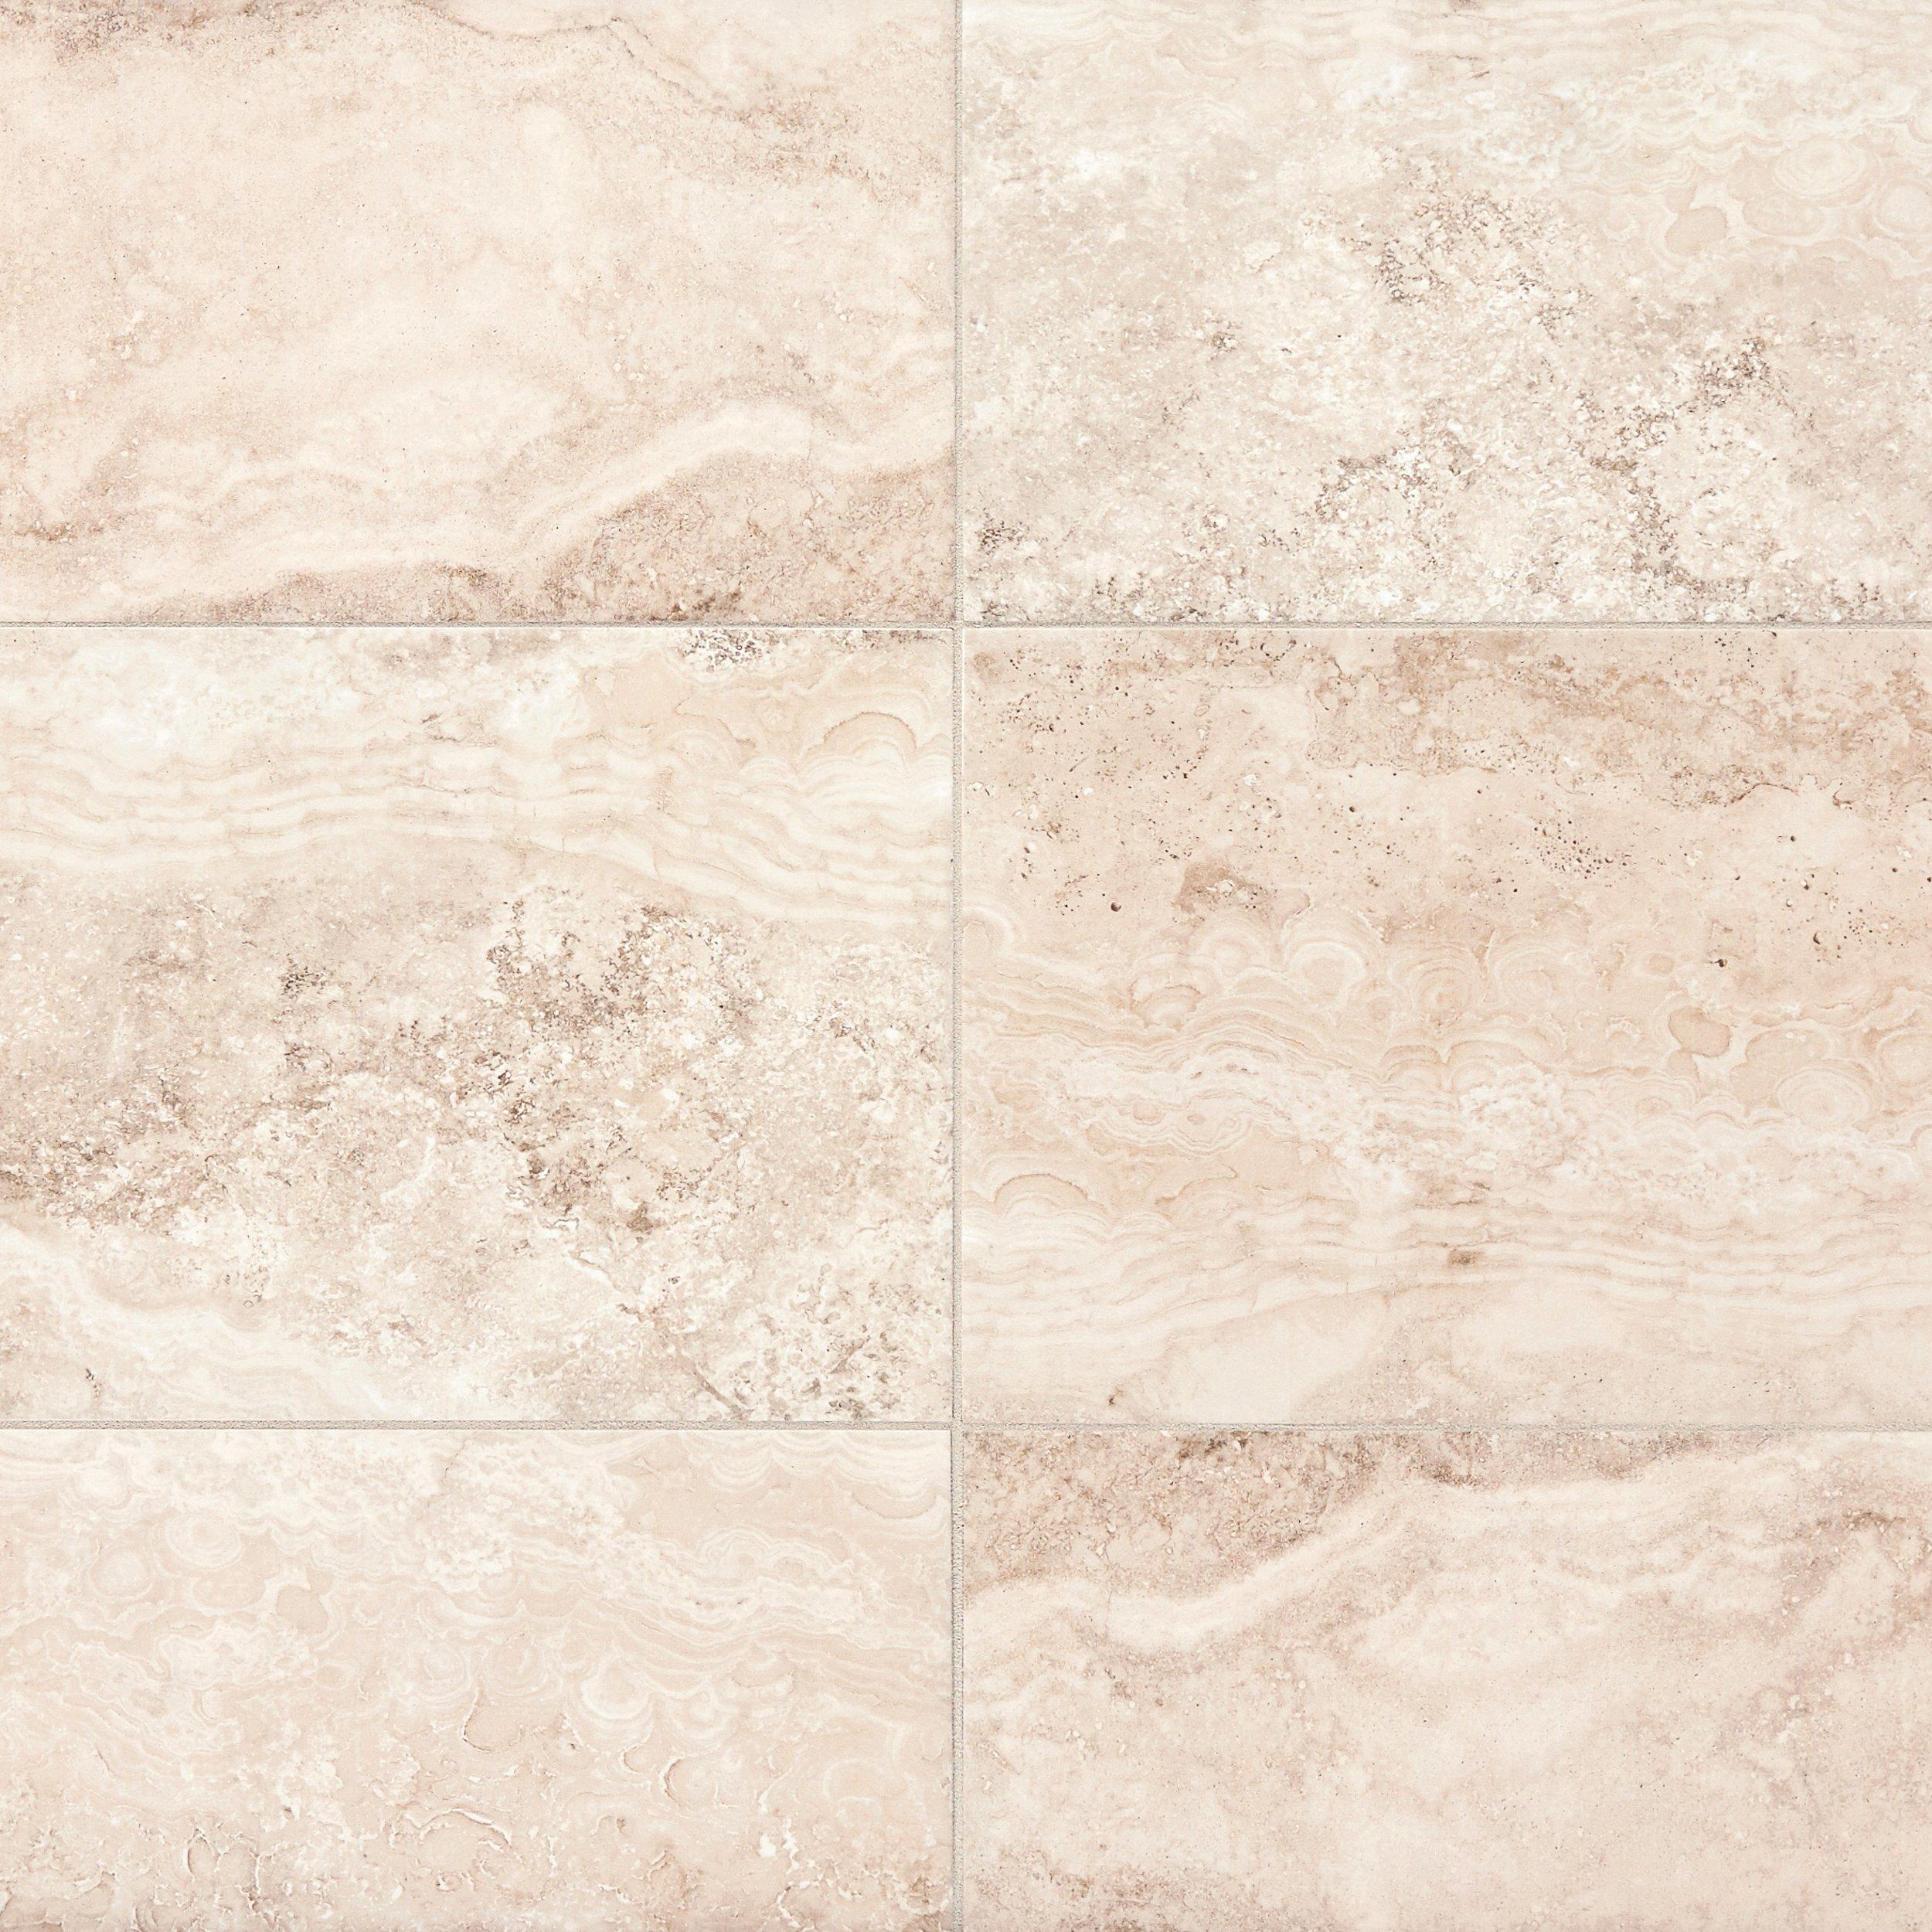 Ceramic tile odessa beige ceramic tile 13in x 22in 100248087 floor and dailygadgetfo Image collections